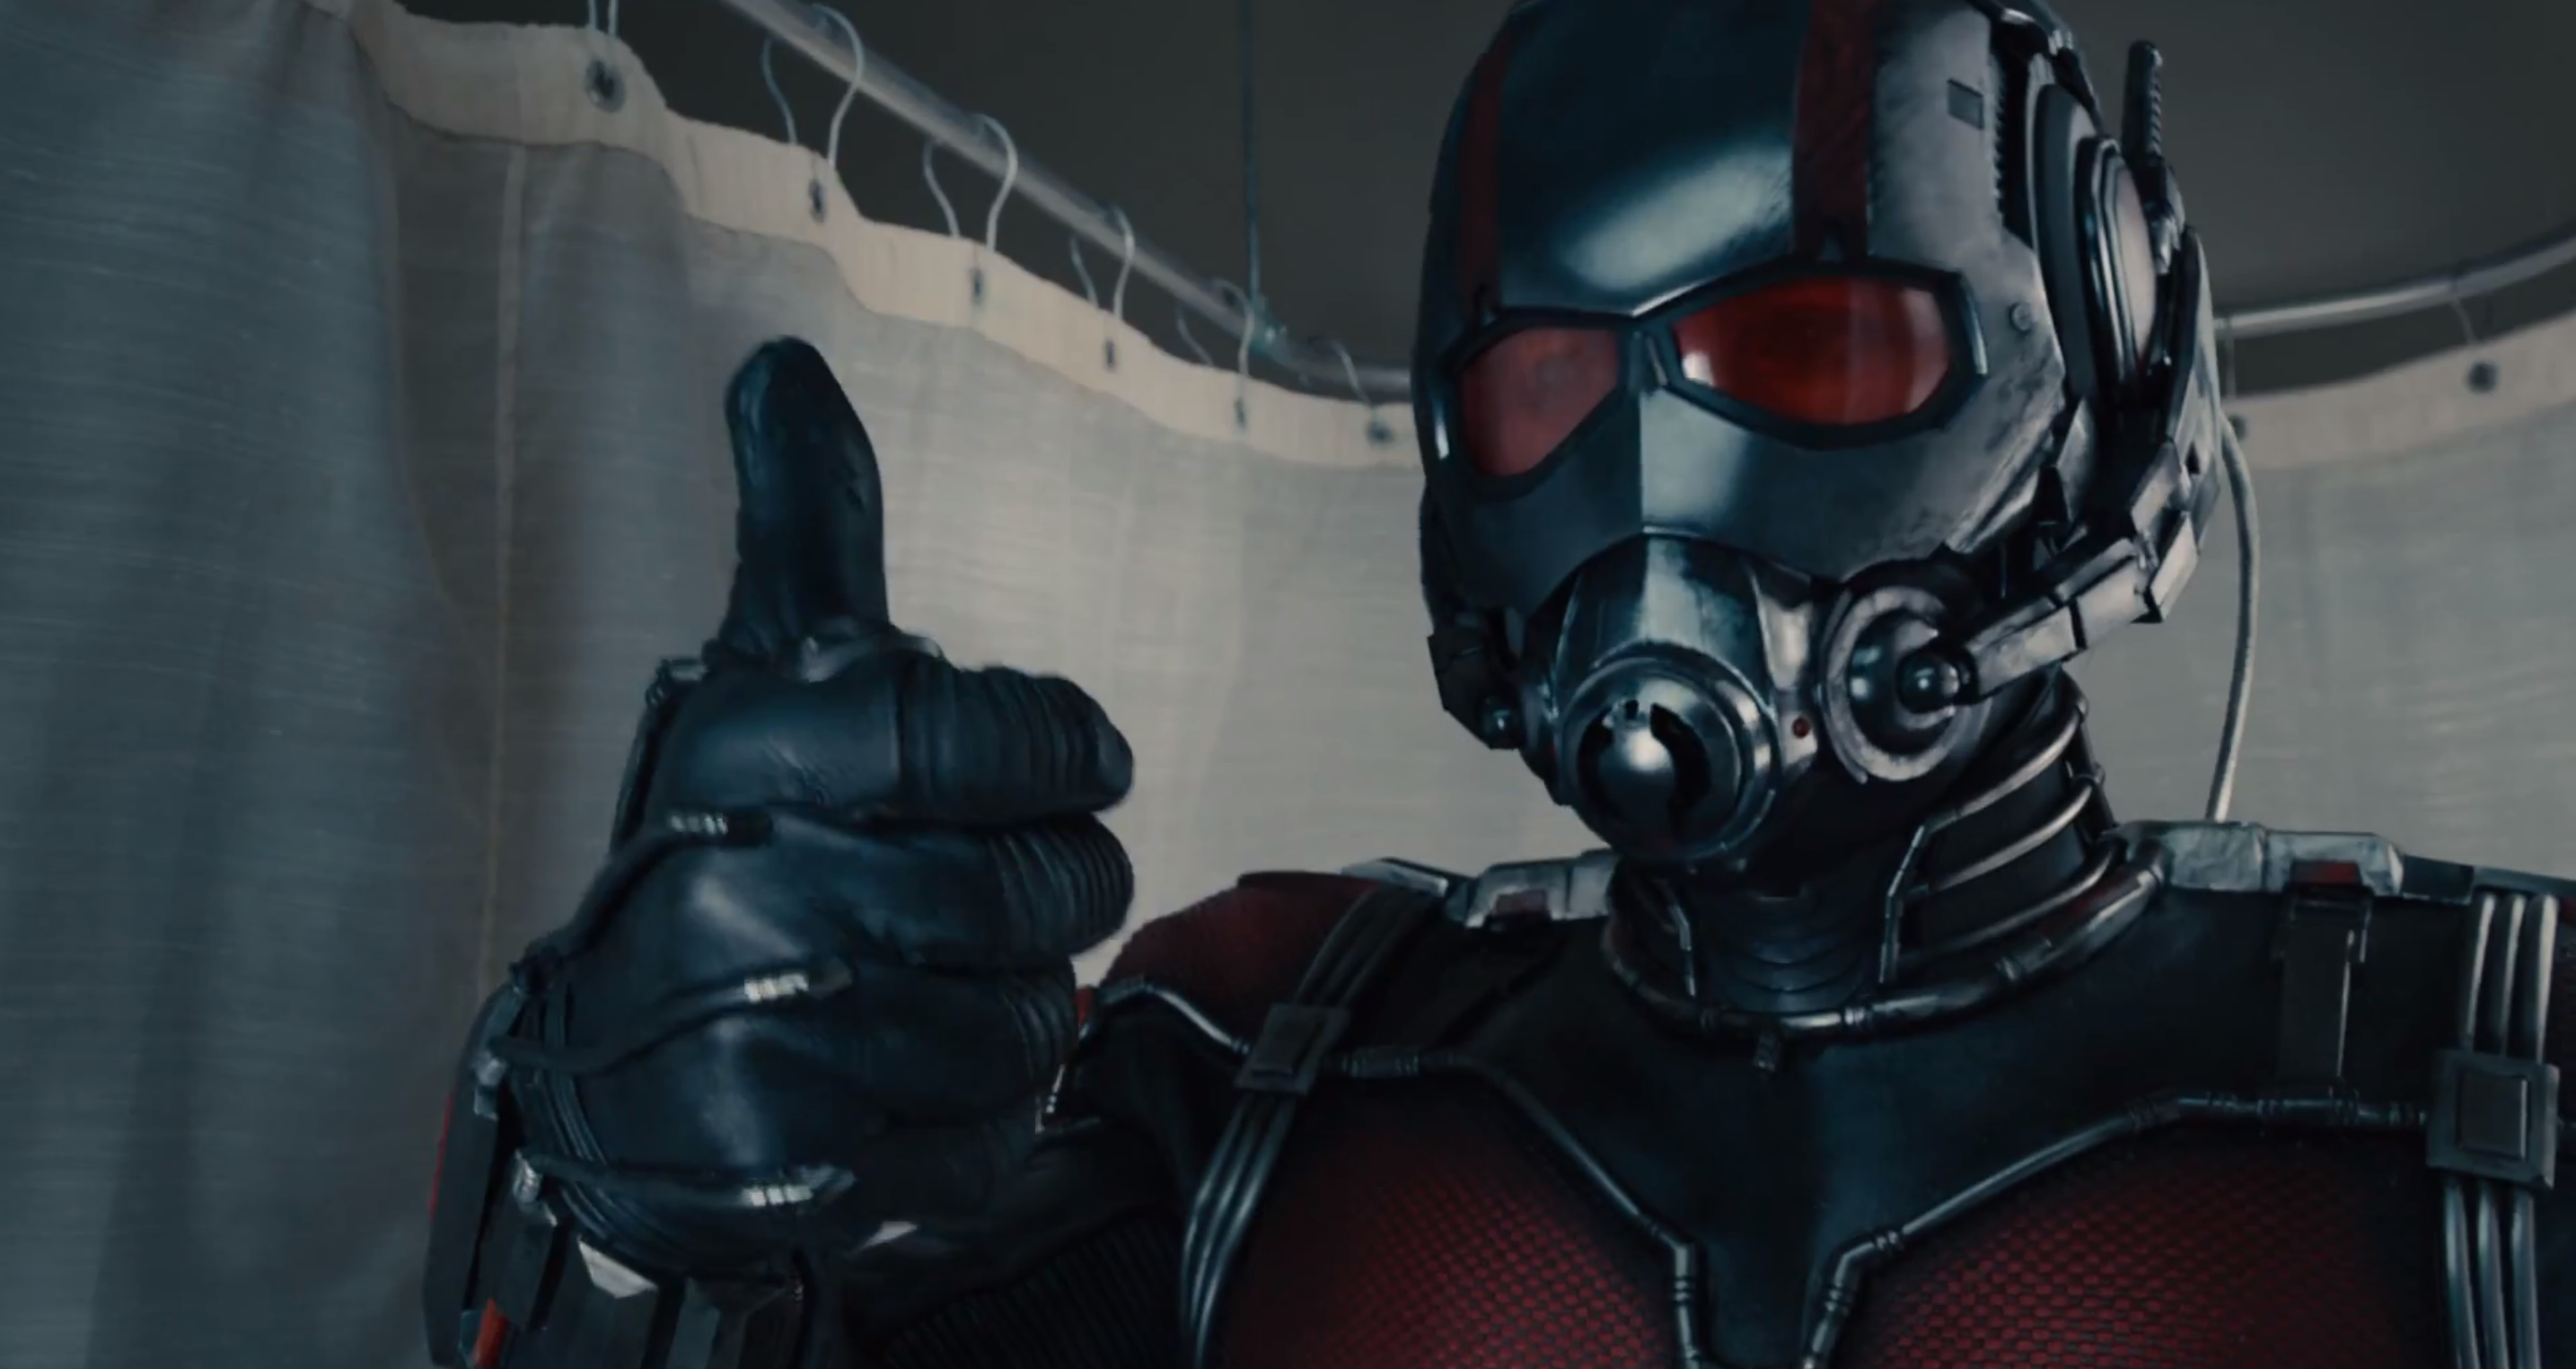 antman thumbs up Wait, What the Hells an Ant Man?